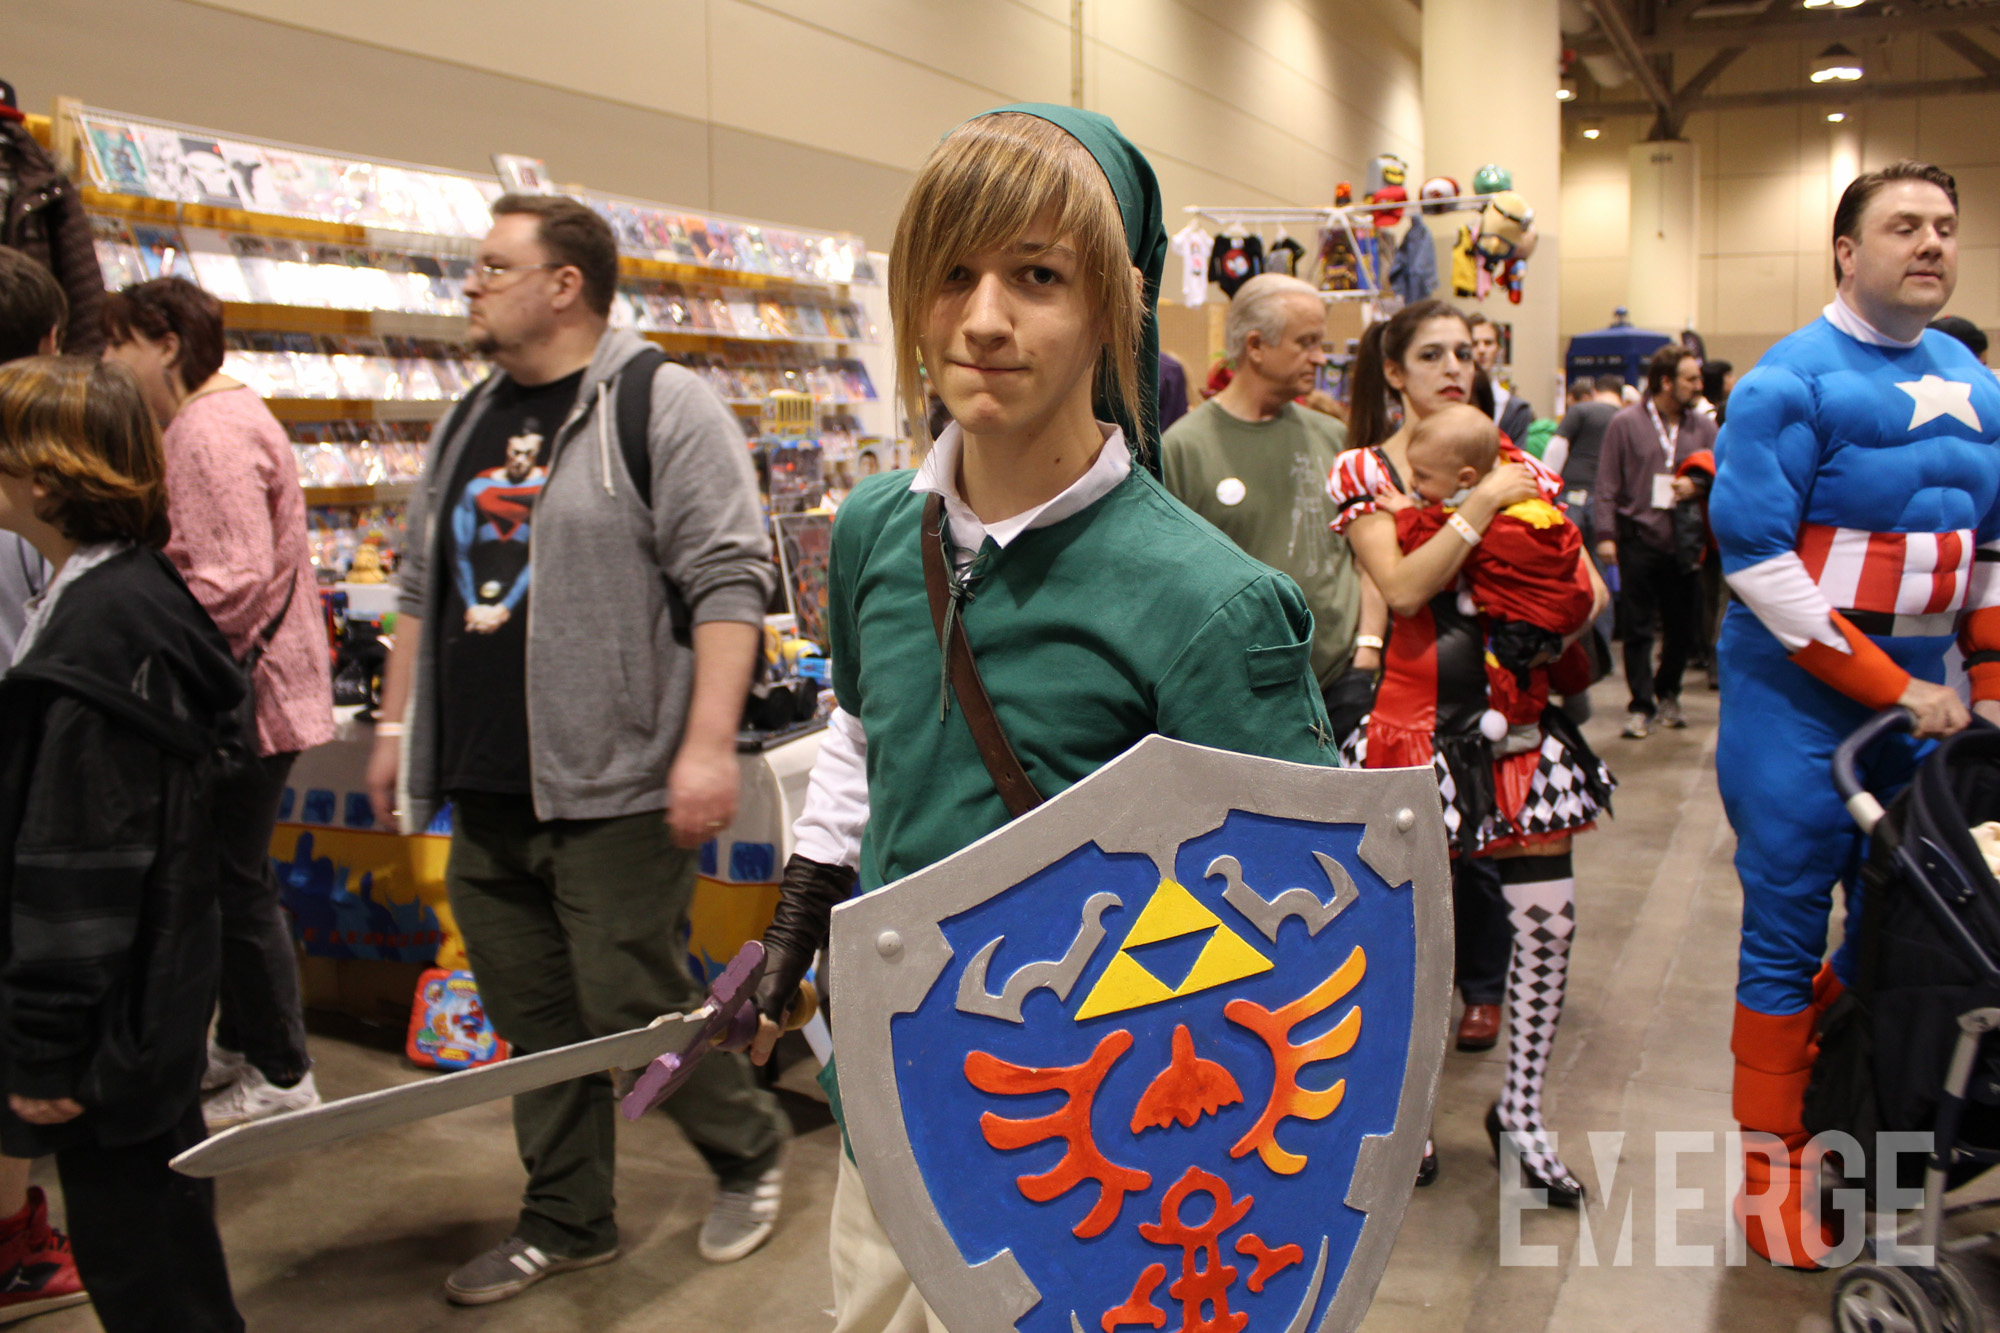 If you call him Zelda, you will face his wrath. It's Link!